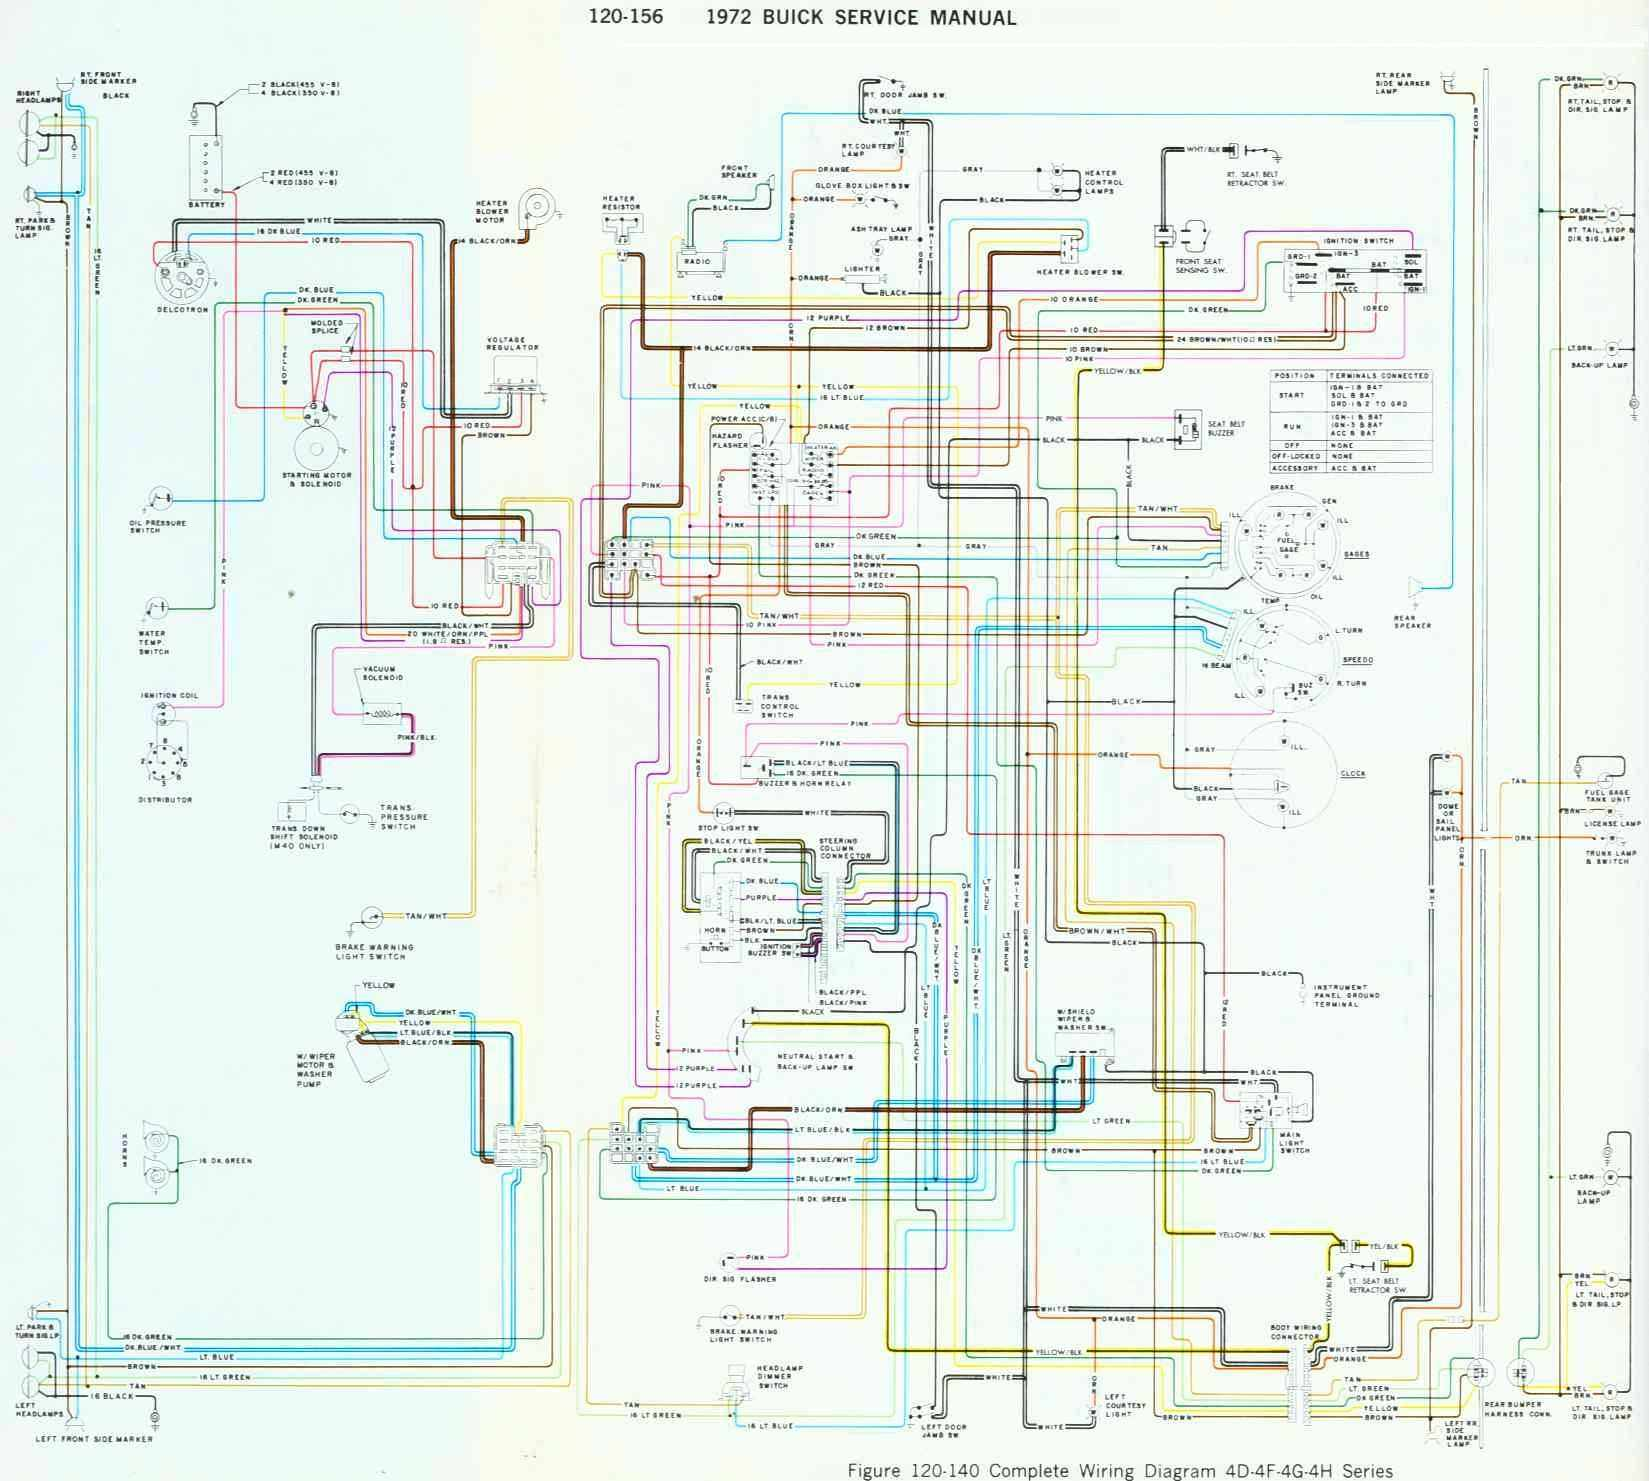 buick wiring diagrams free wiring diagram for you u2022 2003 buick rendezvous fuse box diagram buick rendezvous wiring diagram [ 1649 x 1481 Pixel ]